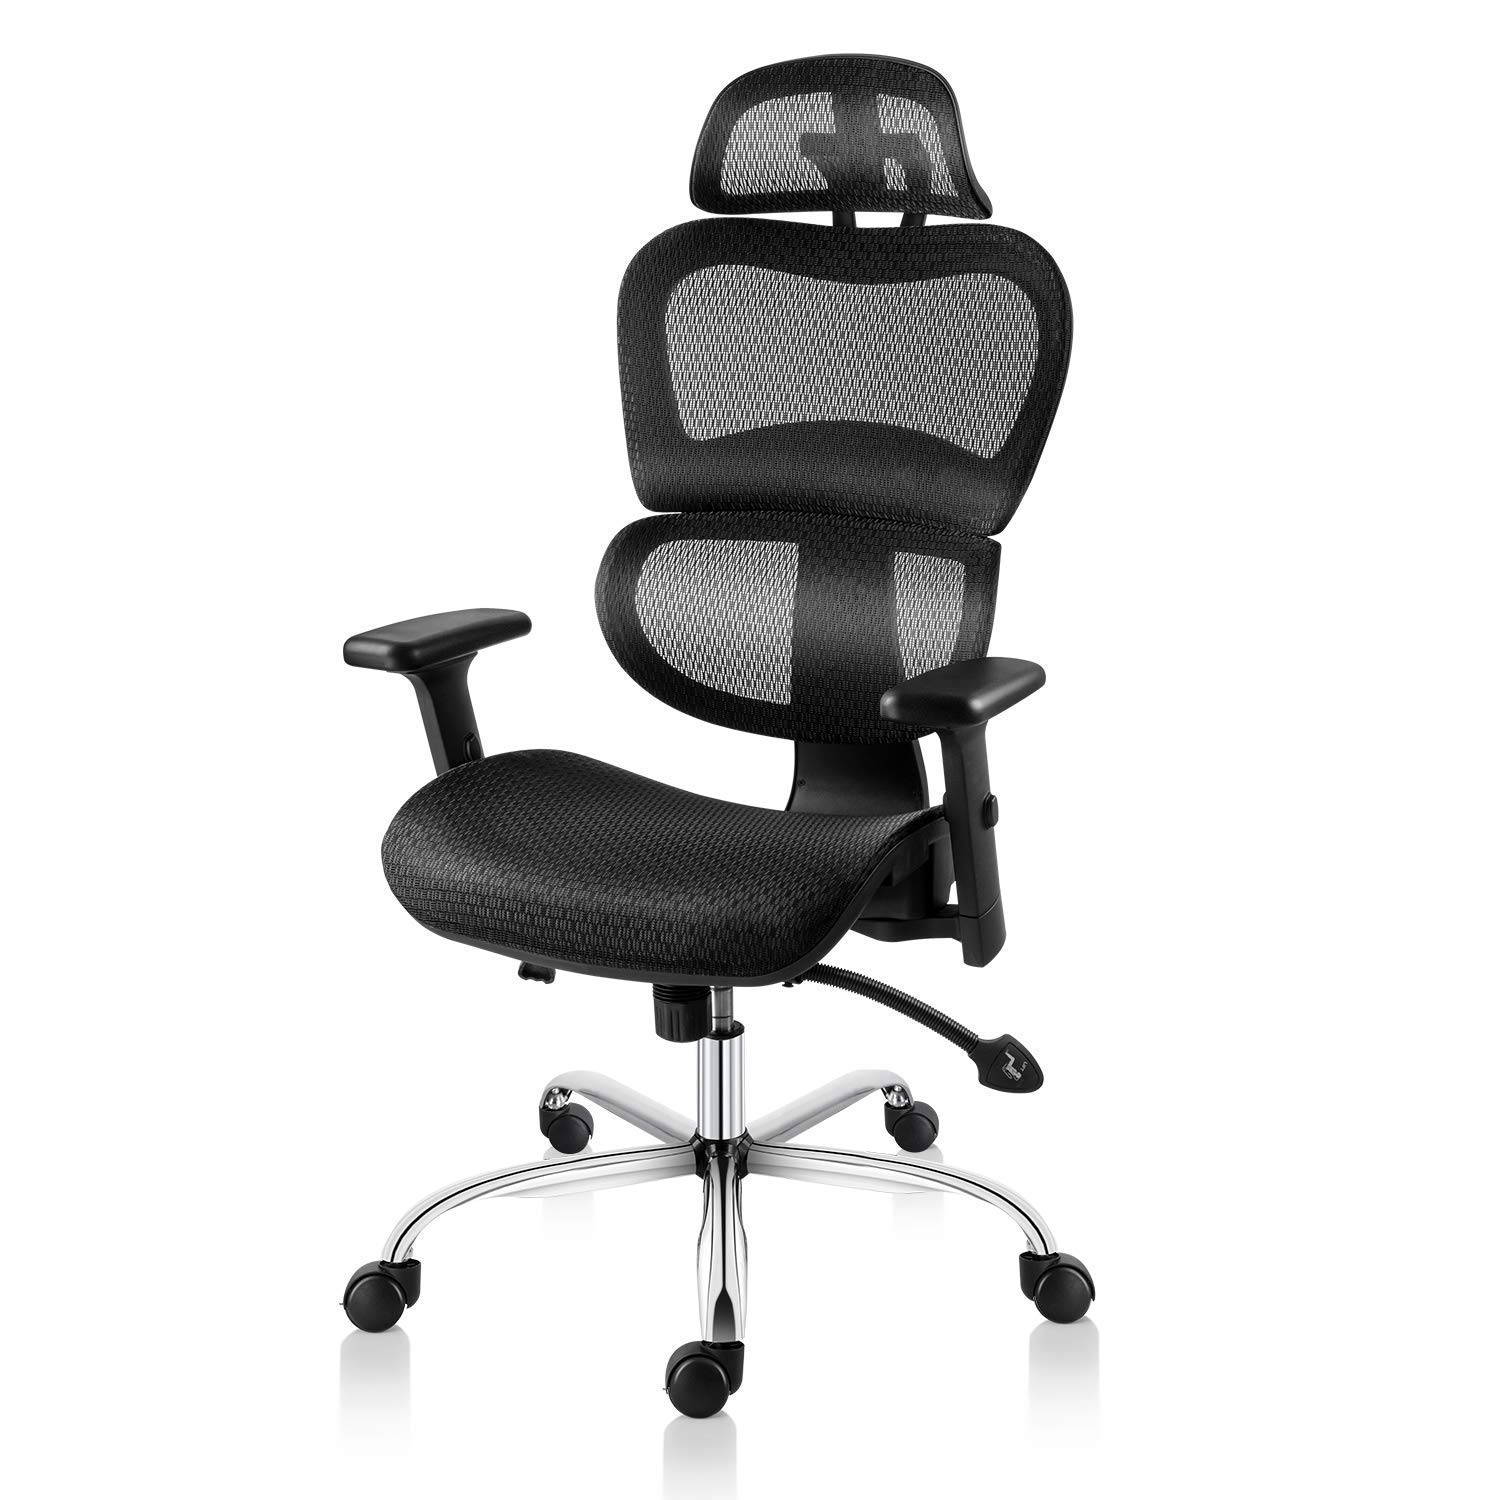 Smugdesk Ergonomic Office Chair High Back Mesh Chairs with Lumbar Support, Adjustable Headrest and 3D Armrest Executive Swivel Chair (Black) by Smugdesk